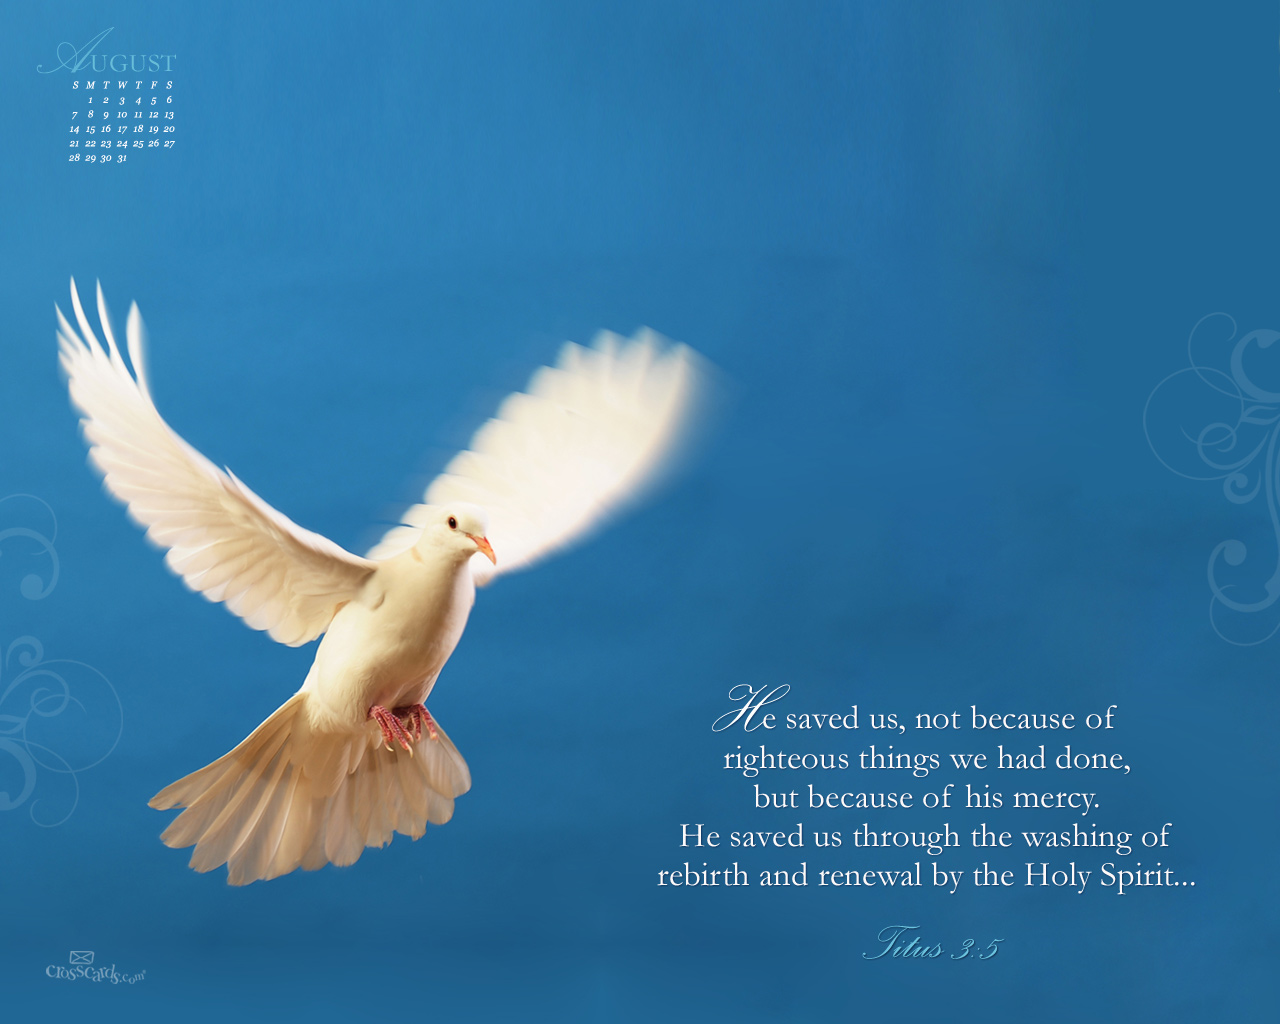 Christian Wallpapers Christian Desktop Calendar Wallpapers 1280x1024